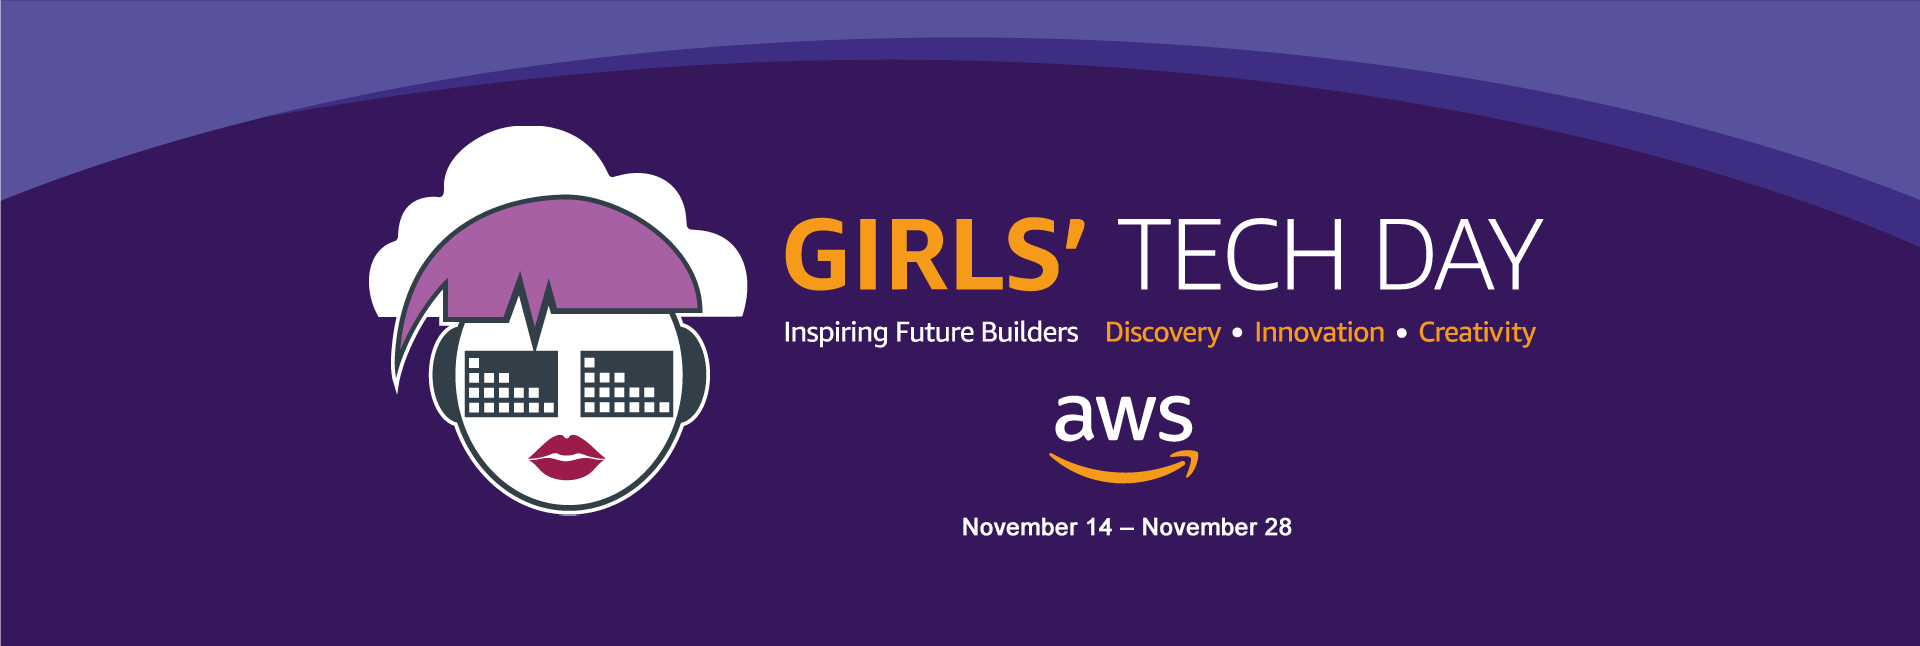 AWS Girls' Tech Day